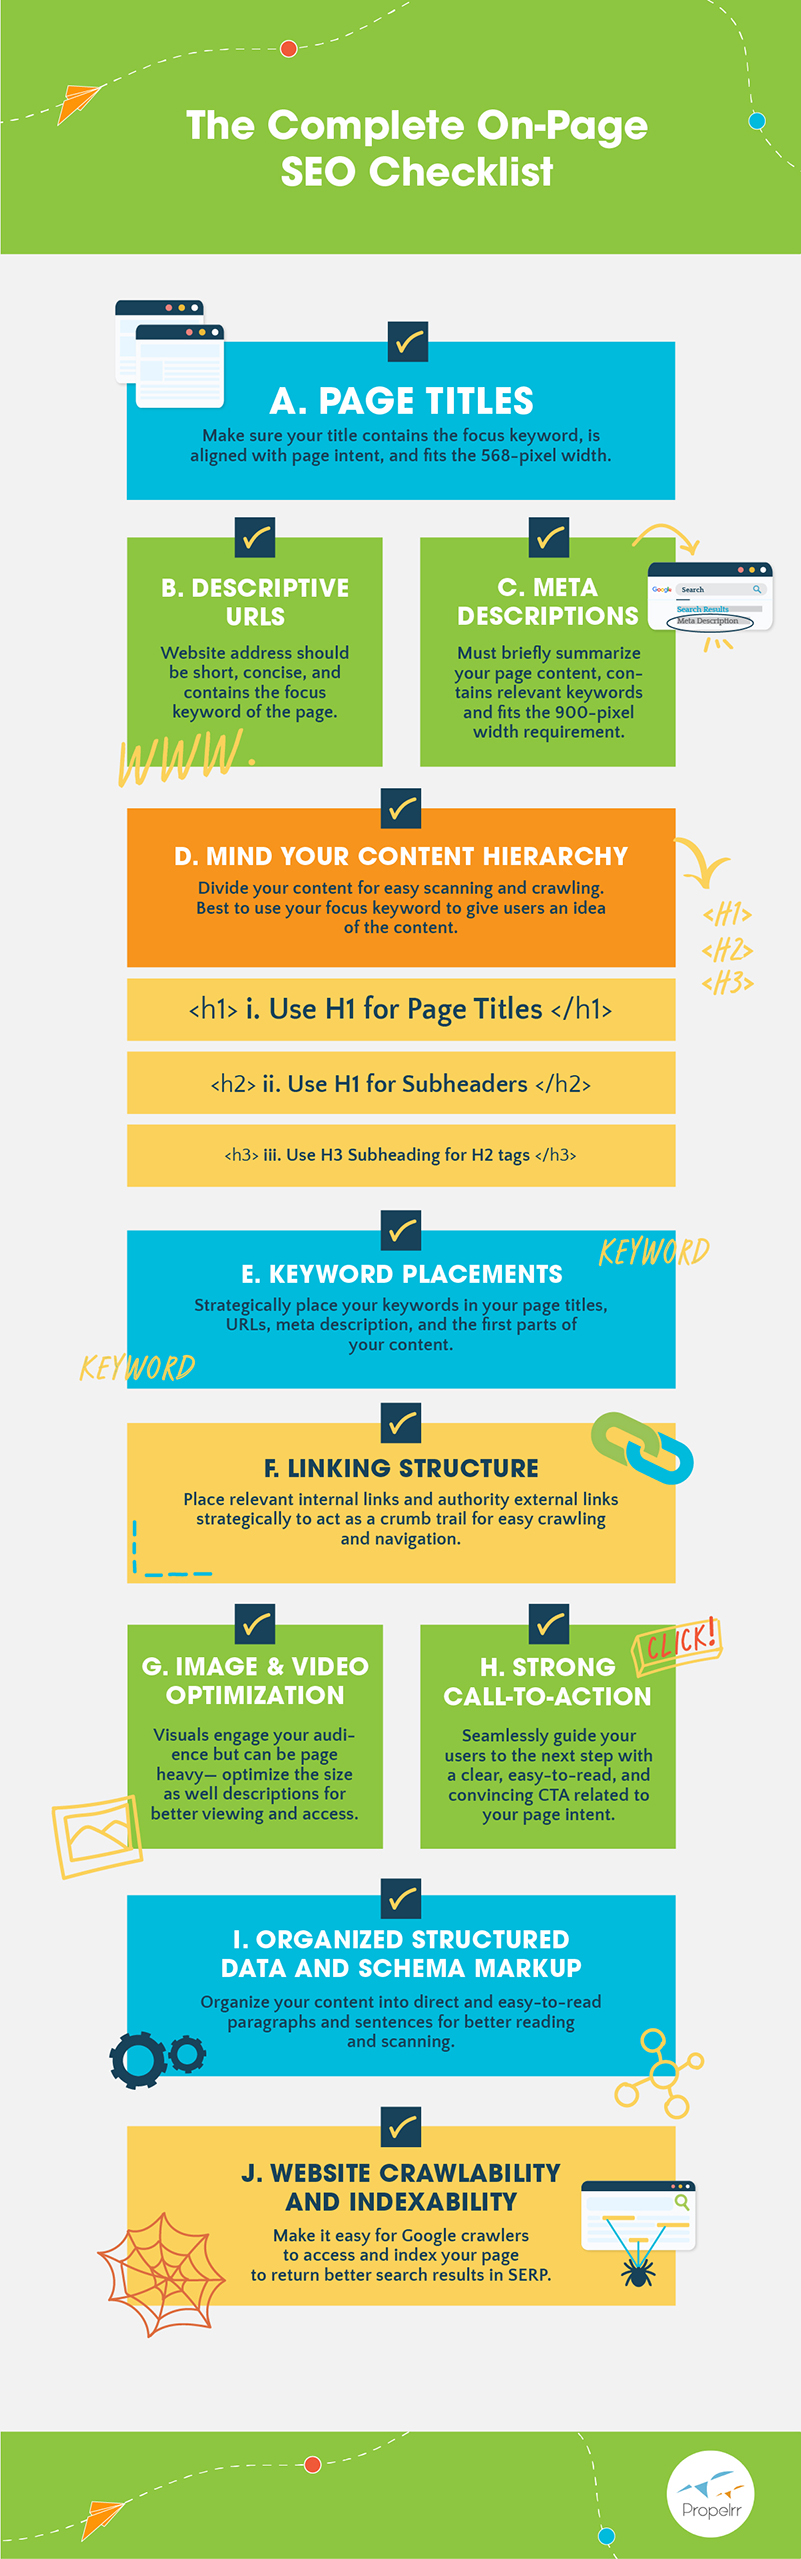 On-Page SEO Checklist - Infographic